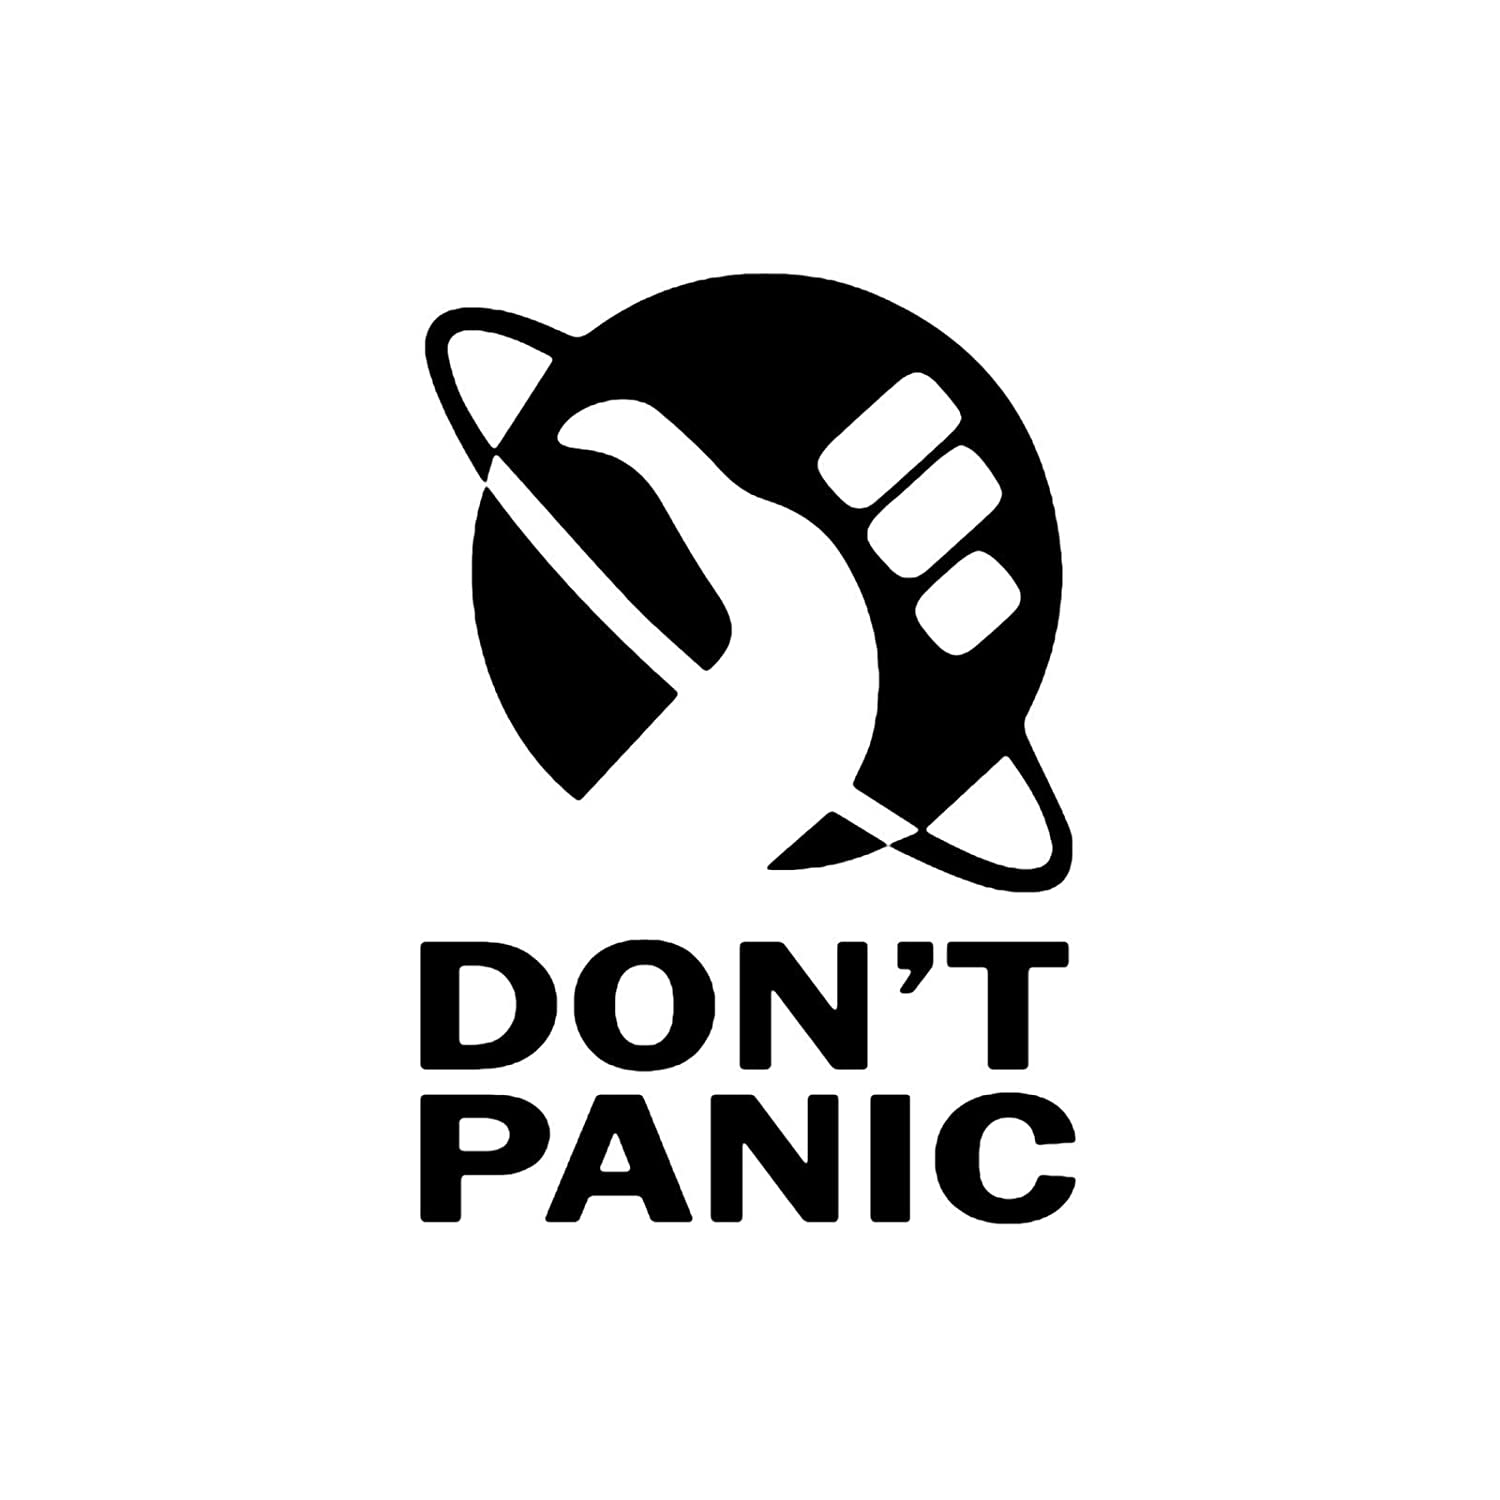 Amazoncom Dont Panic Hitchhikers Guide HGTG Die Cut Vinyl - A basic guide to vinyl graphics